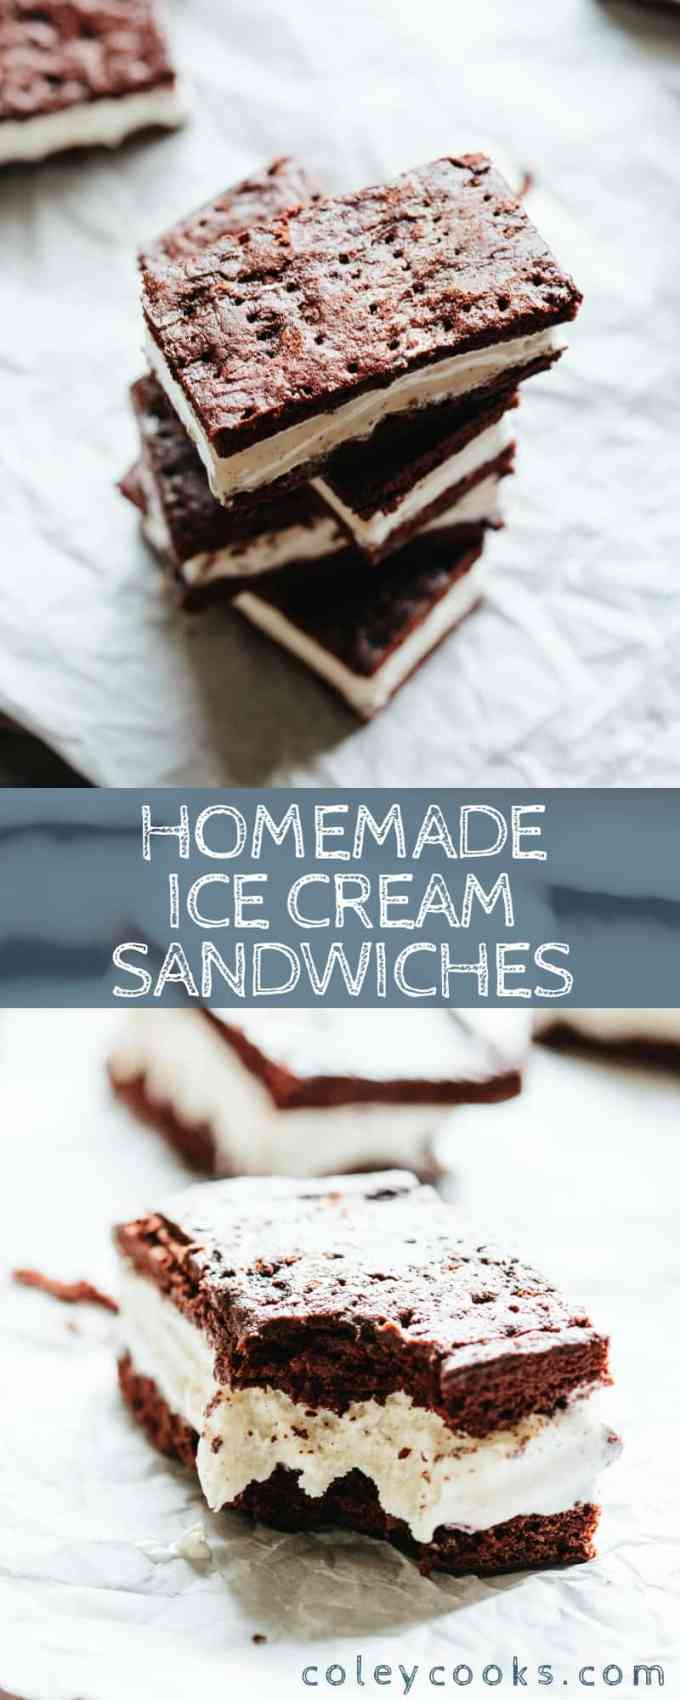 Homemade Ice Cream Sandwiches! So easy and so much better than store bought. Gluten free optional! Great for kids and summer parties. #easy #homemade #icecream #sandwiches #dessert #recipe | ColeyCooks.com